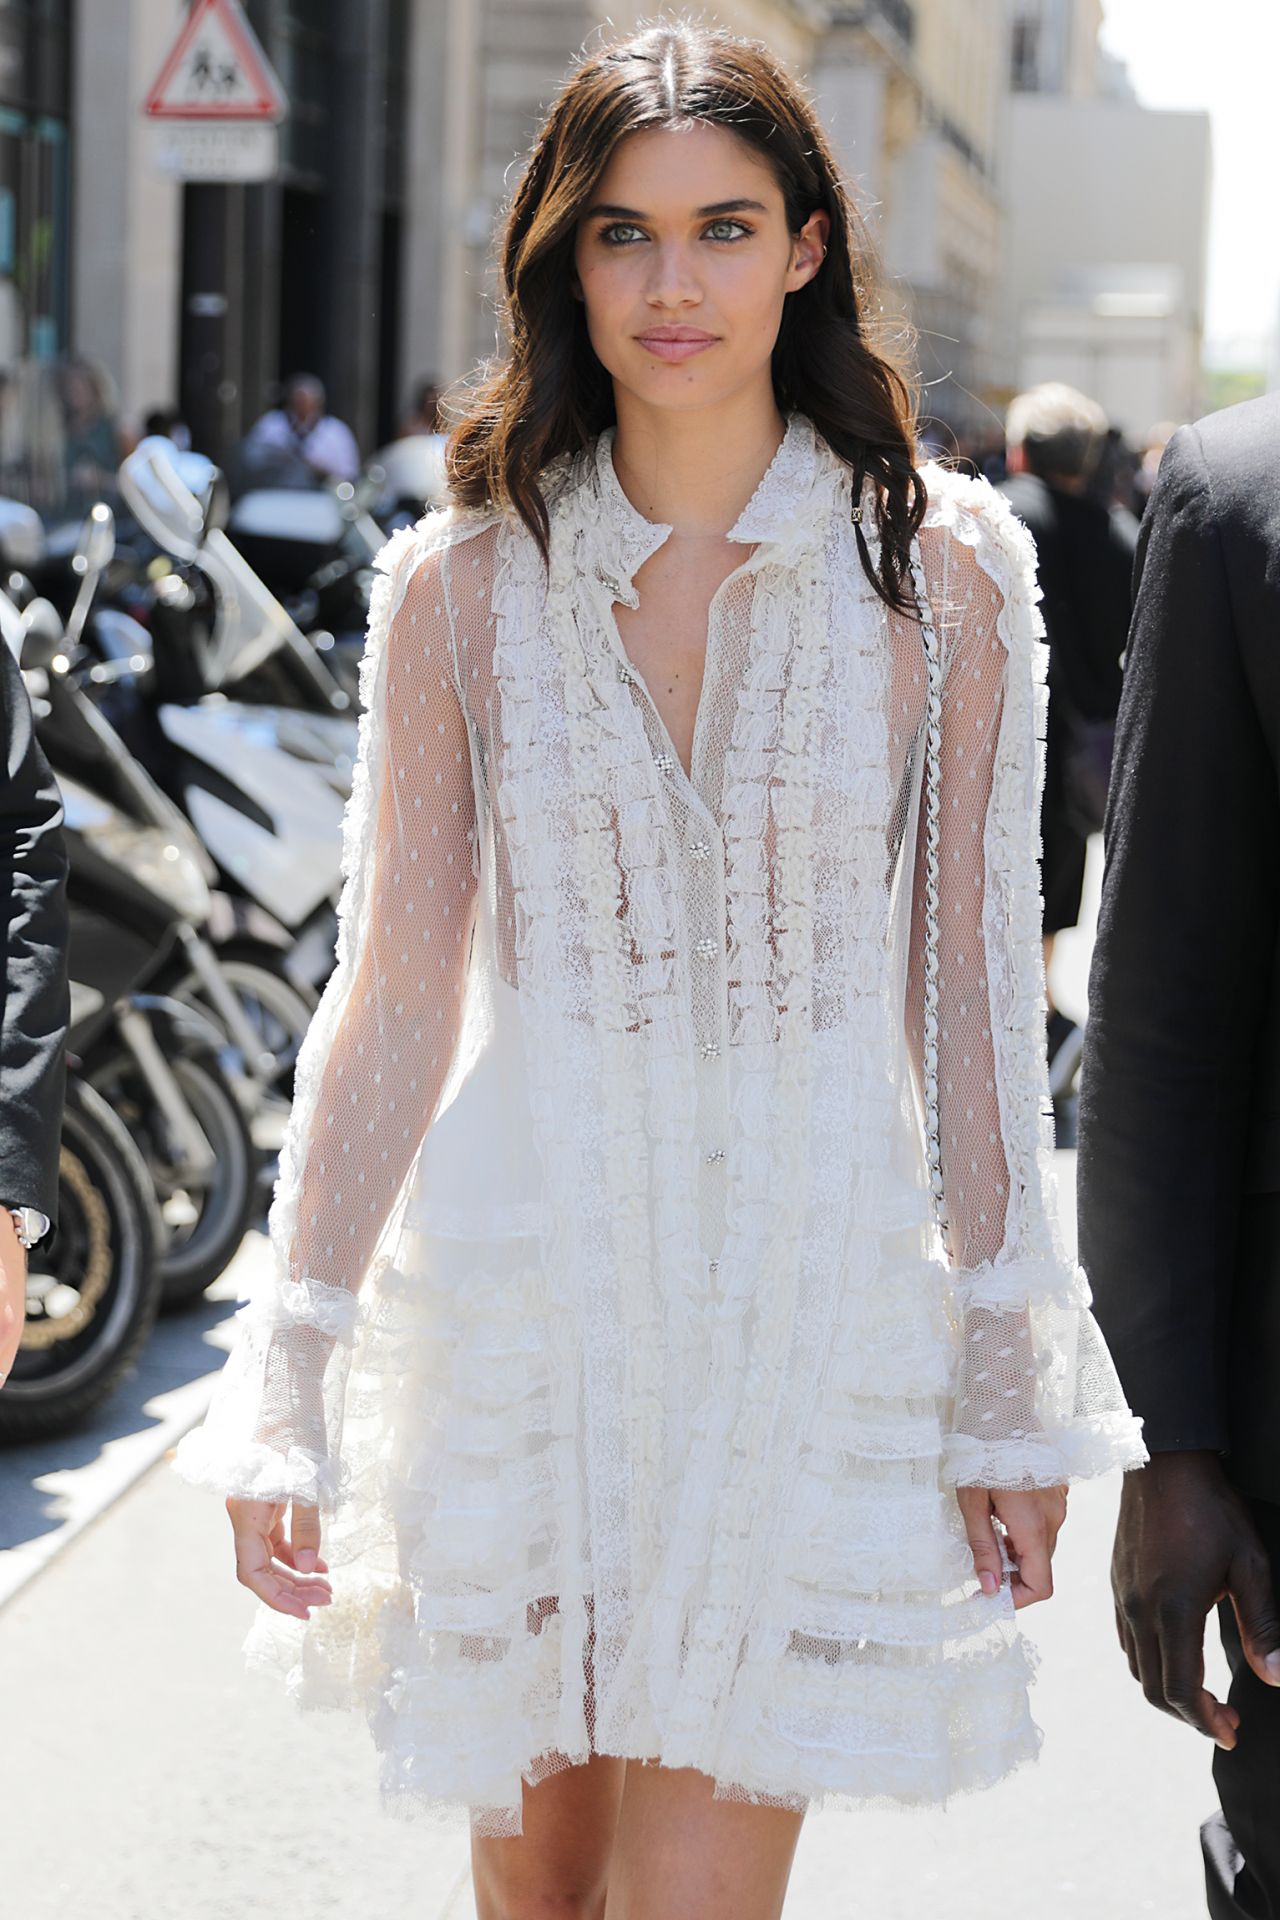 Paris Fashion Week Street Style Spring 2015: Sara Sampaio At Paris Fashion Week